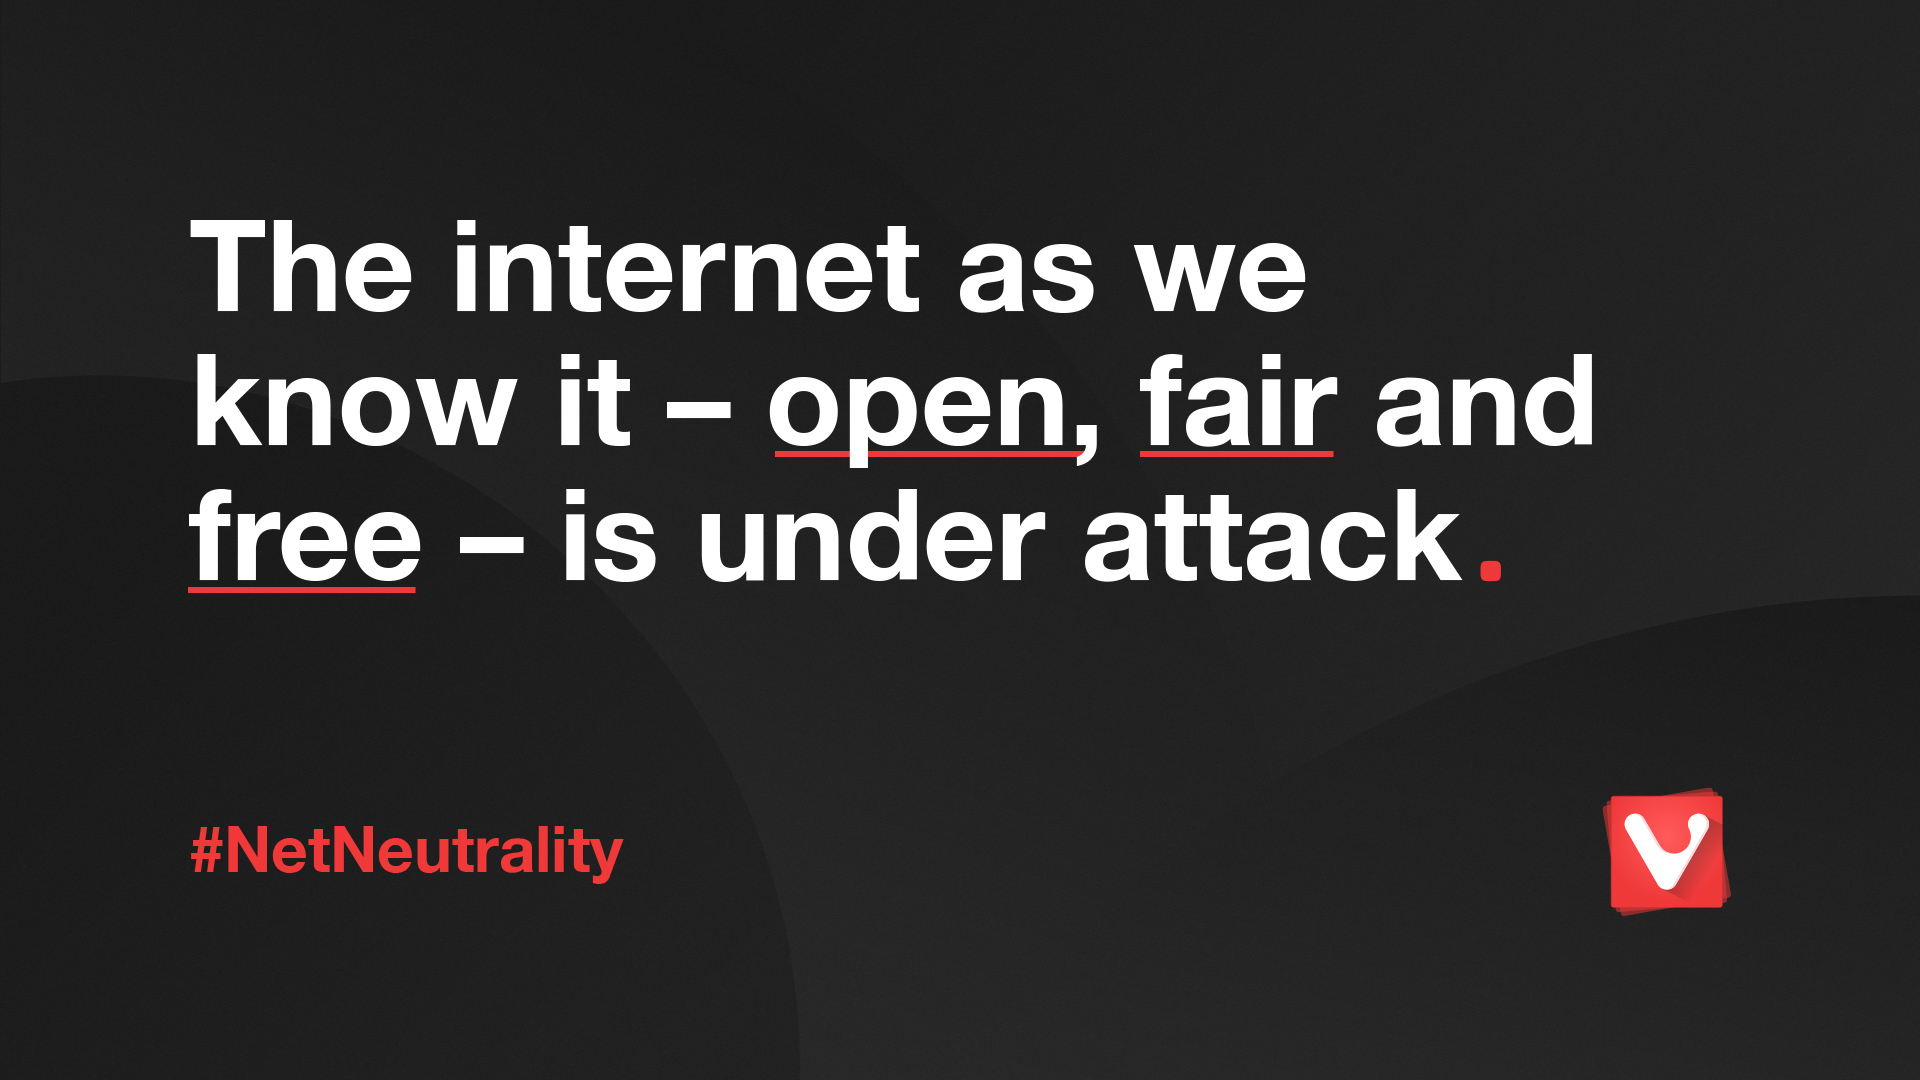 Net Neutrality banner - The internet as we know it - open, fair and free - is under attack.